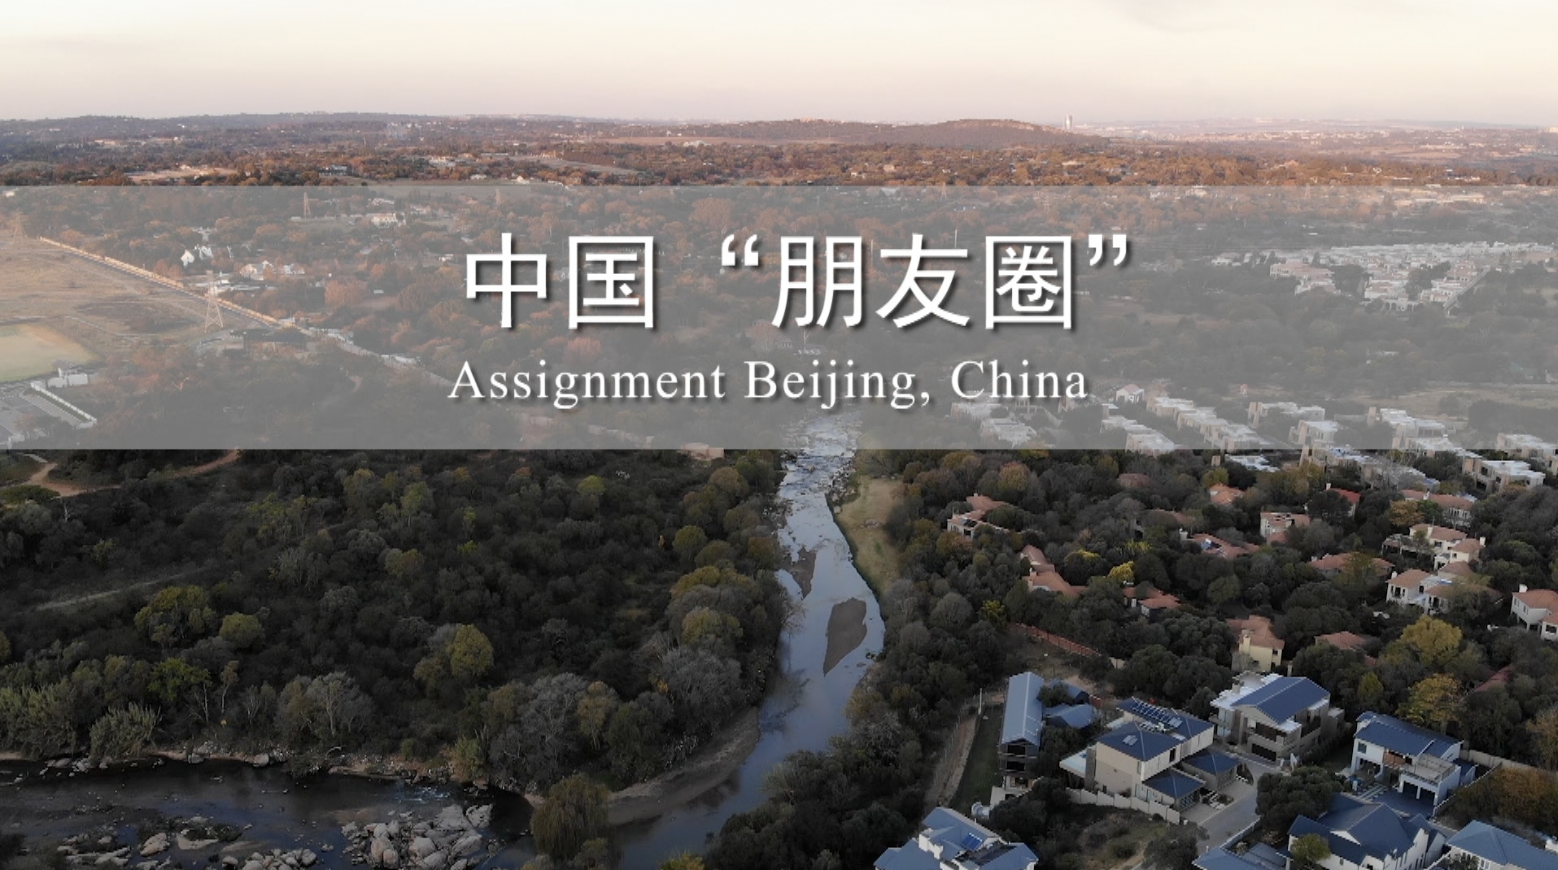 Video|South African Ambassador to China: We hope to develop with China and make progress together